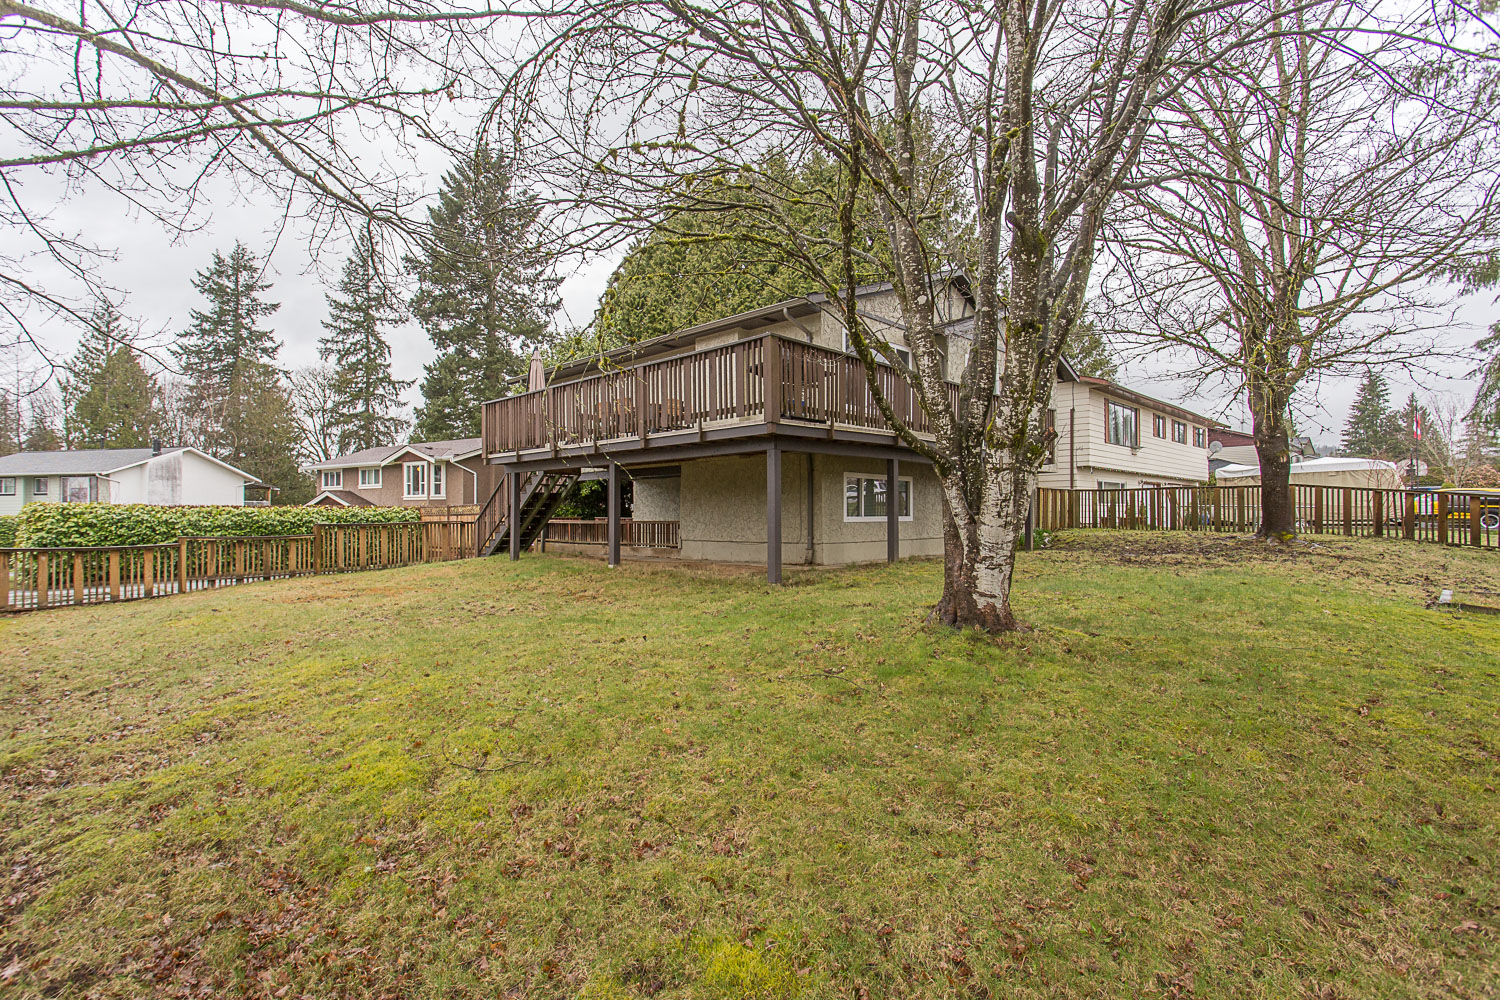 Main Photo: 31951 ROBIN Crescent in Mission: Mission BC House for sale : MLS®# R2251089